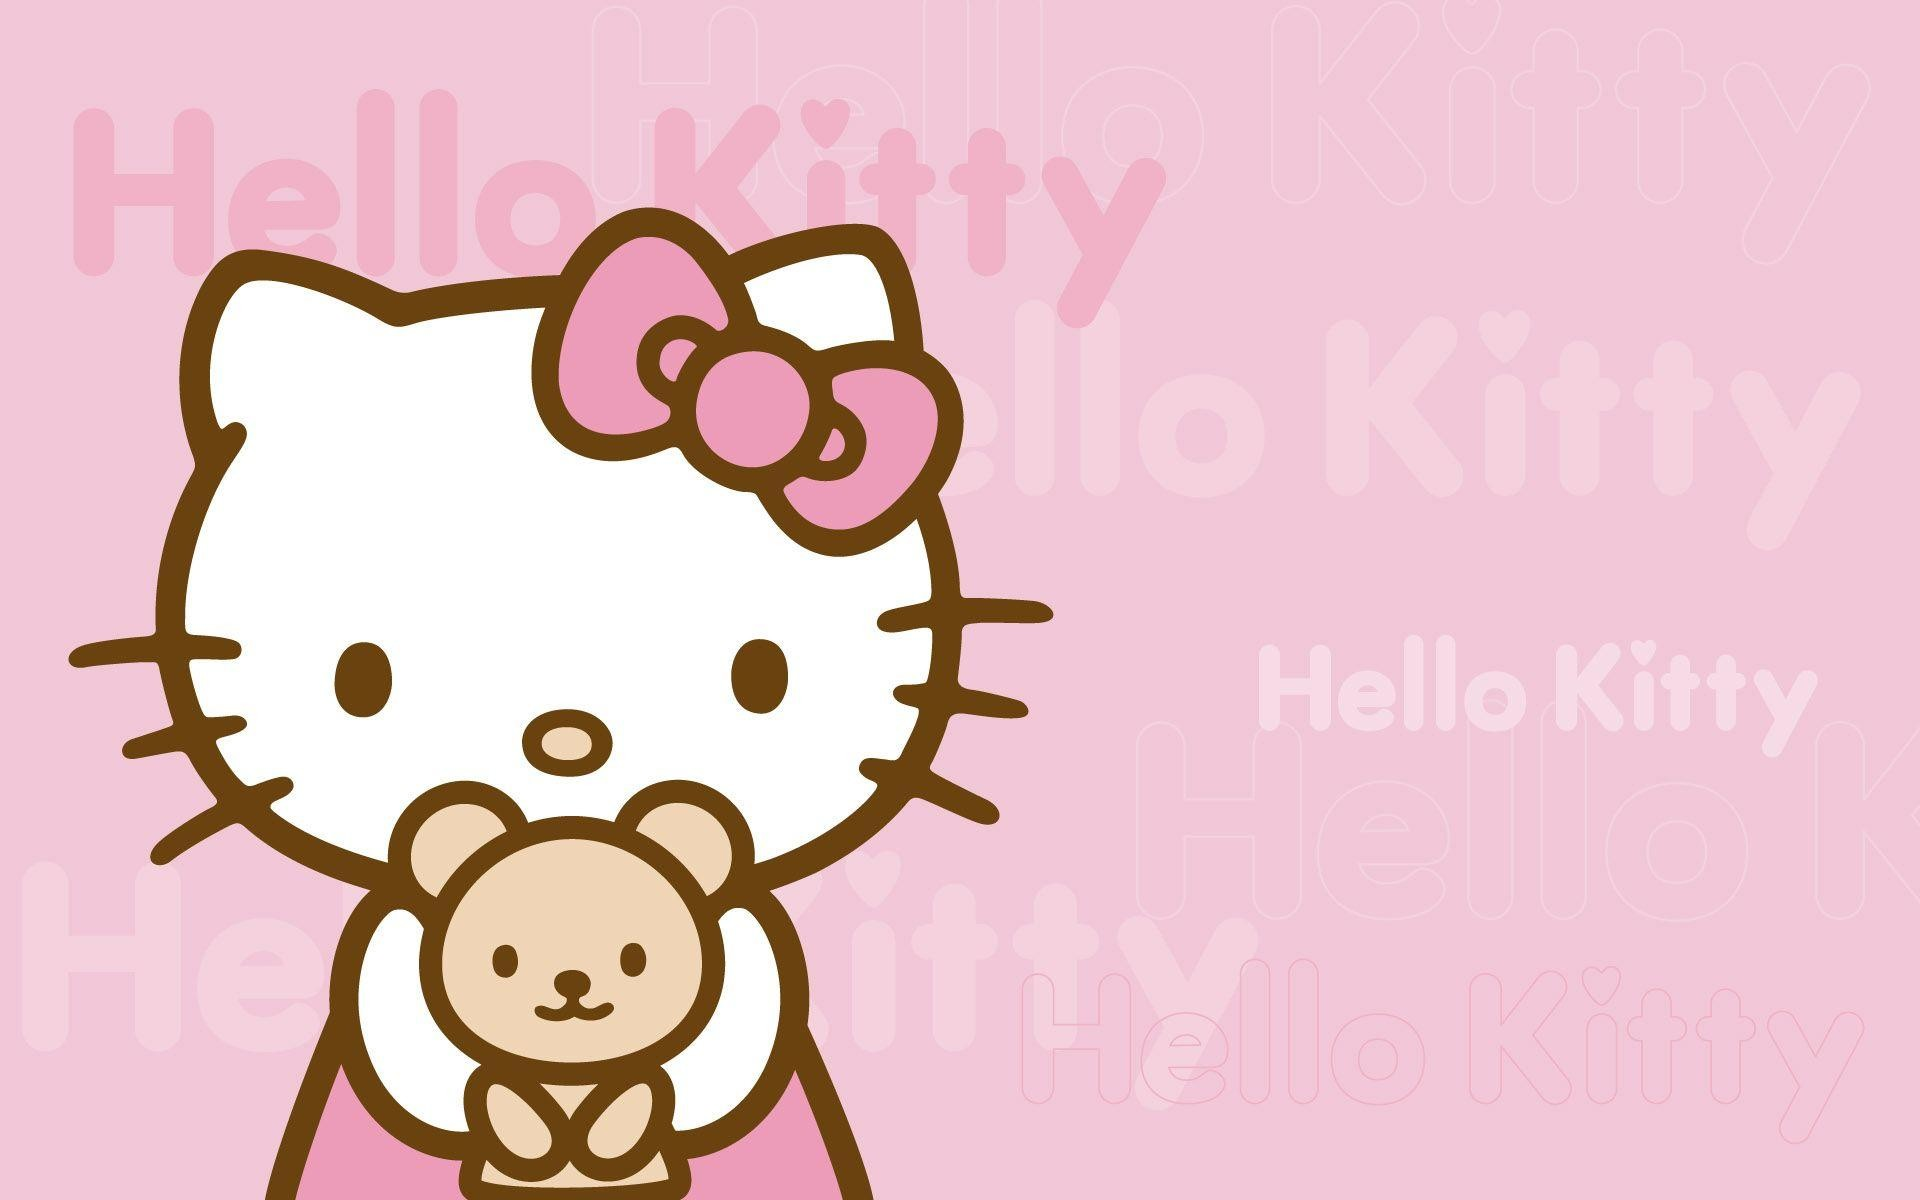 Hd wallpaper hello kitty 69 images 1920x1200 hello wallpapers full hd wallpaper search page 3 voltagebd Choice Image